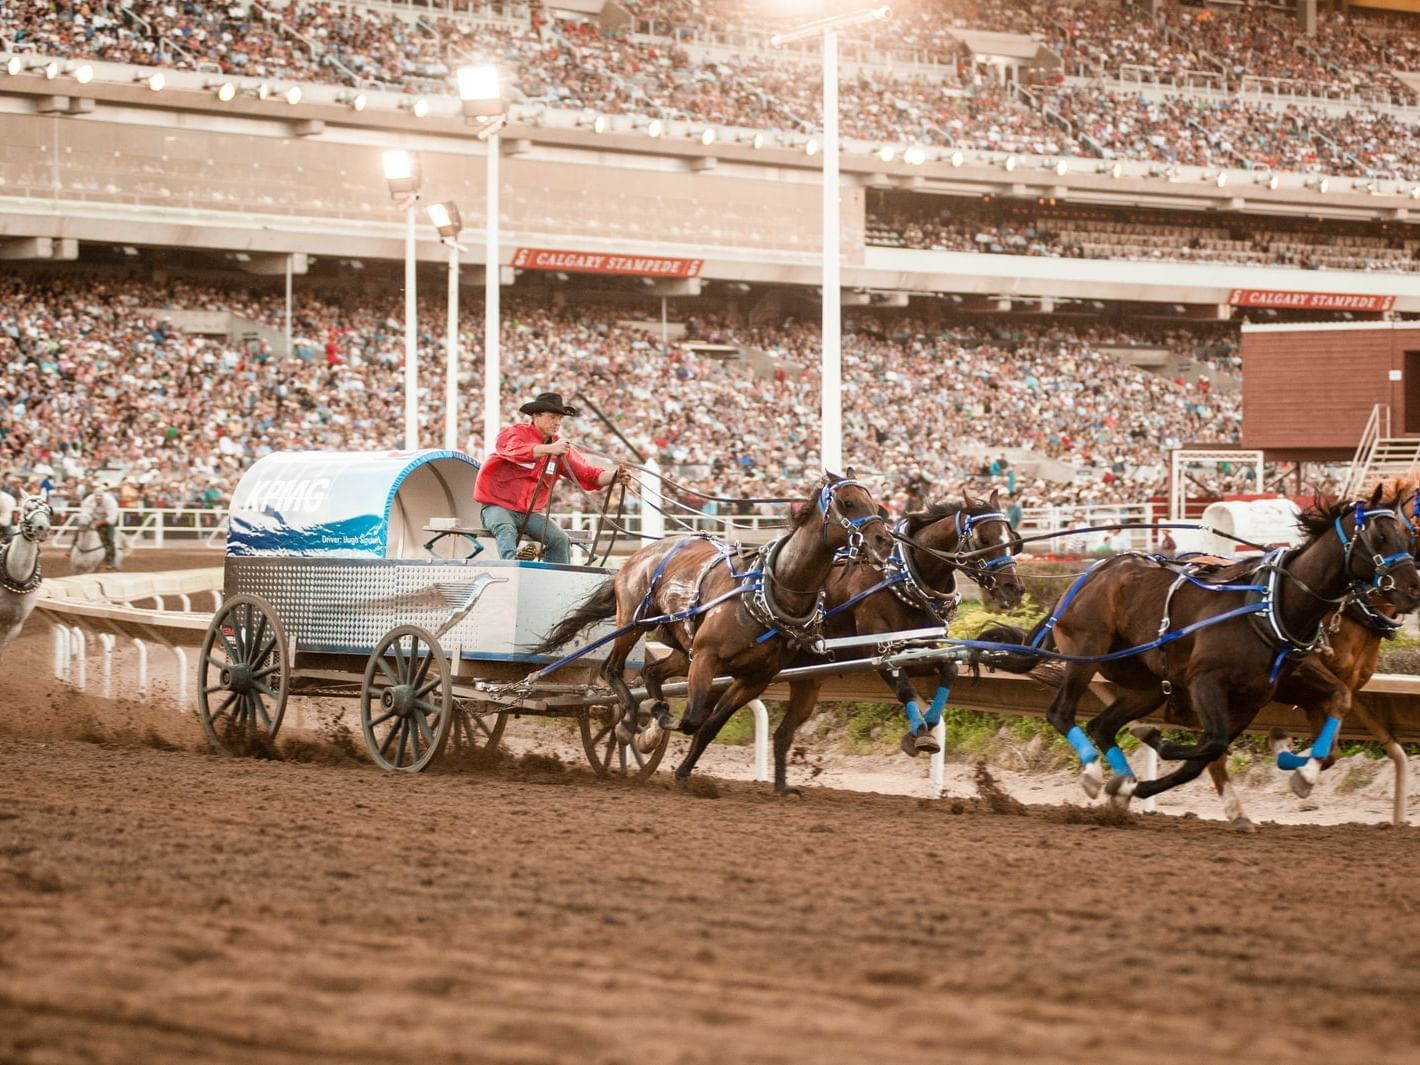 Horse carriage racing at Calgary Stampede